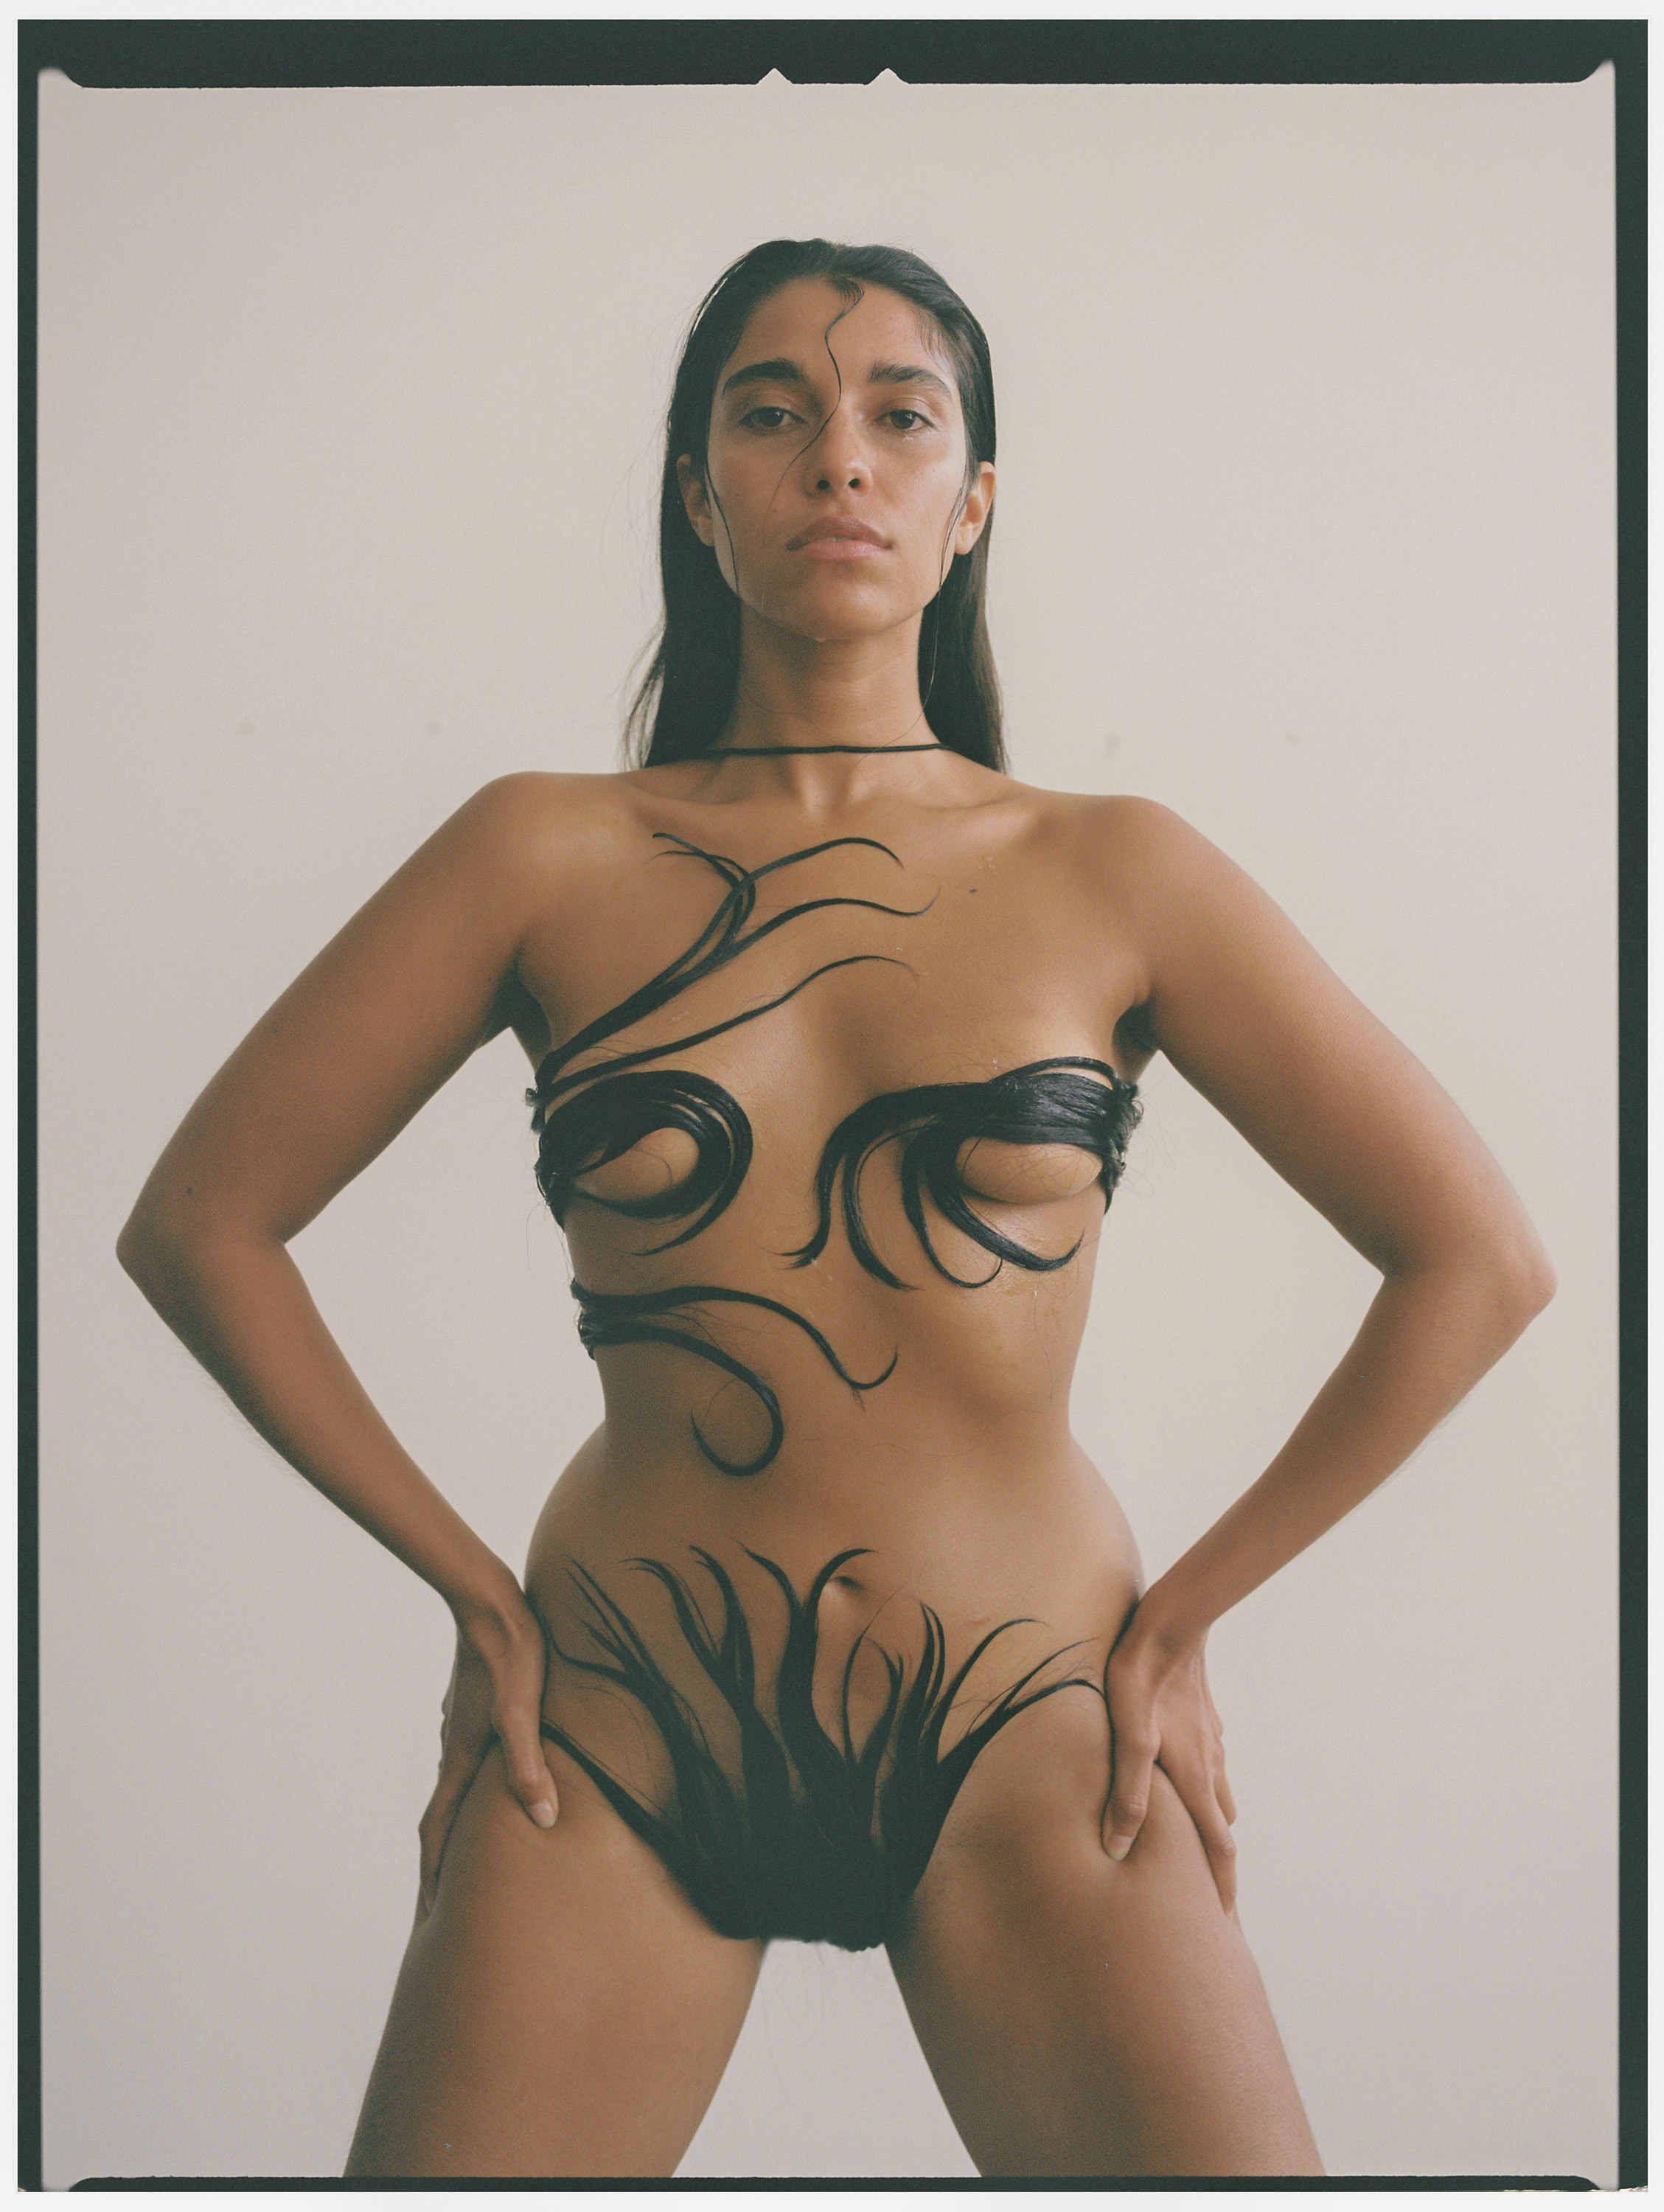 A woman posed naked with her hair covering her breasts